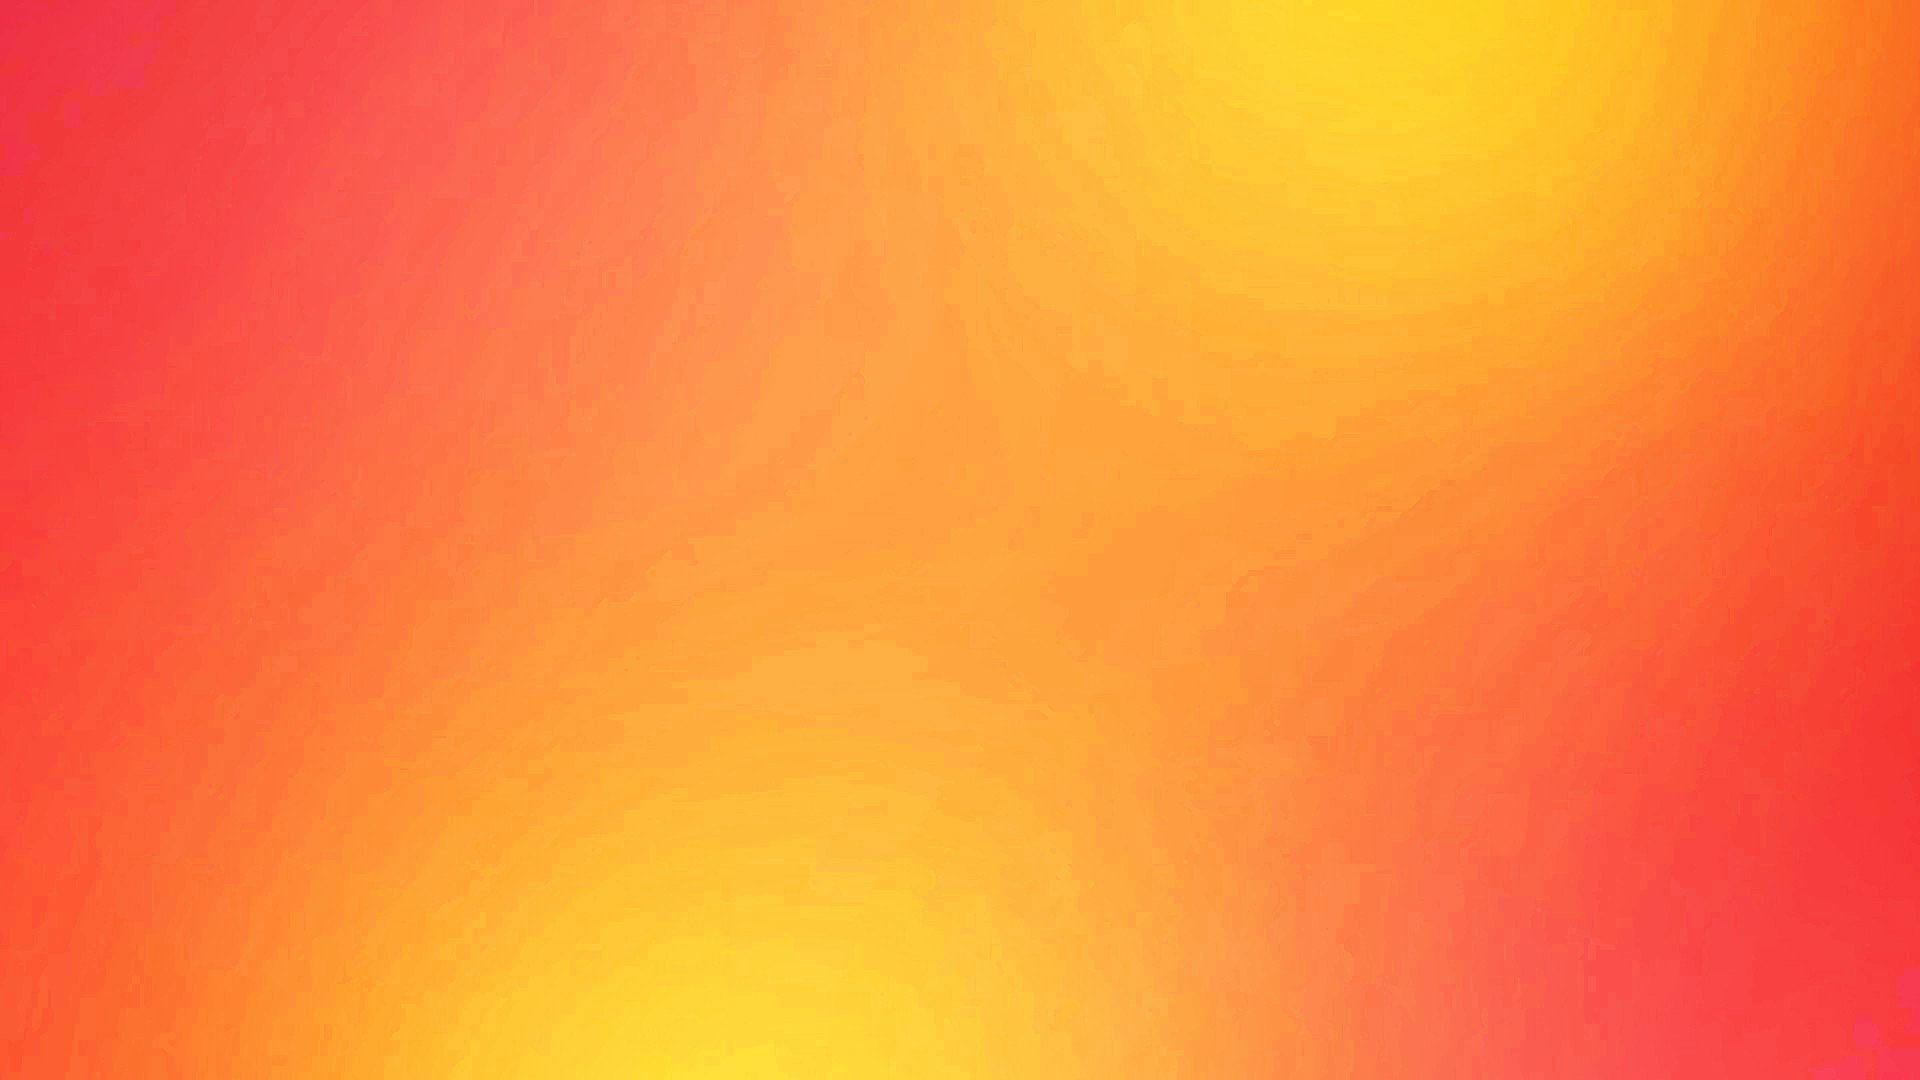 Pink And Yellow Gradient Abstract Wallpaper  Free Images